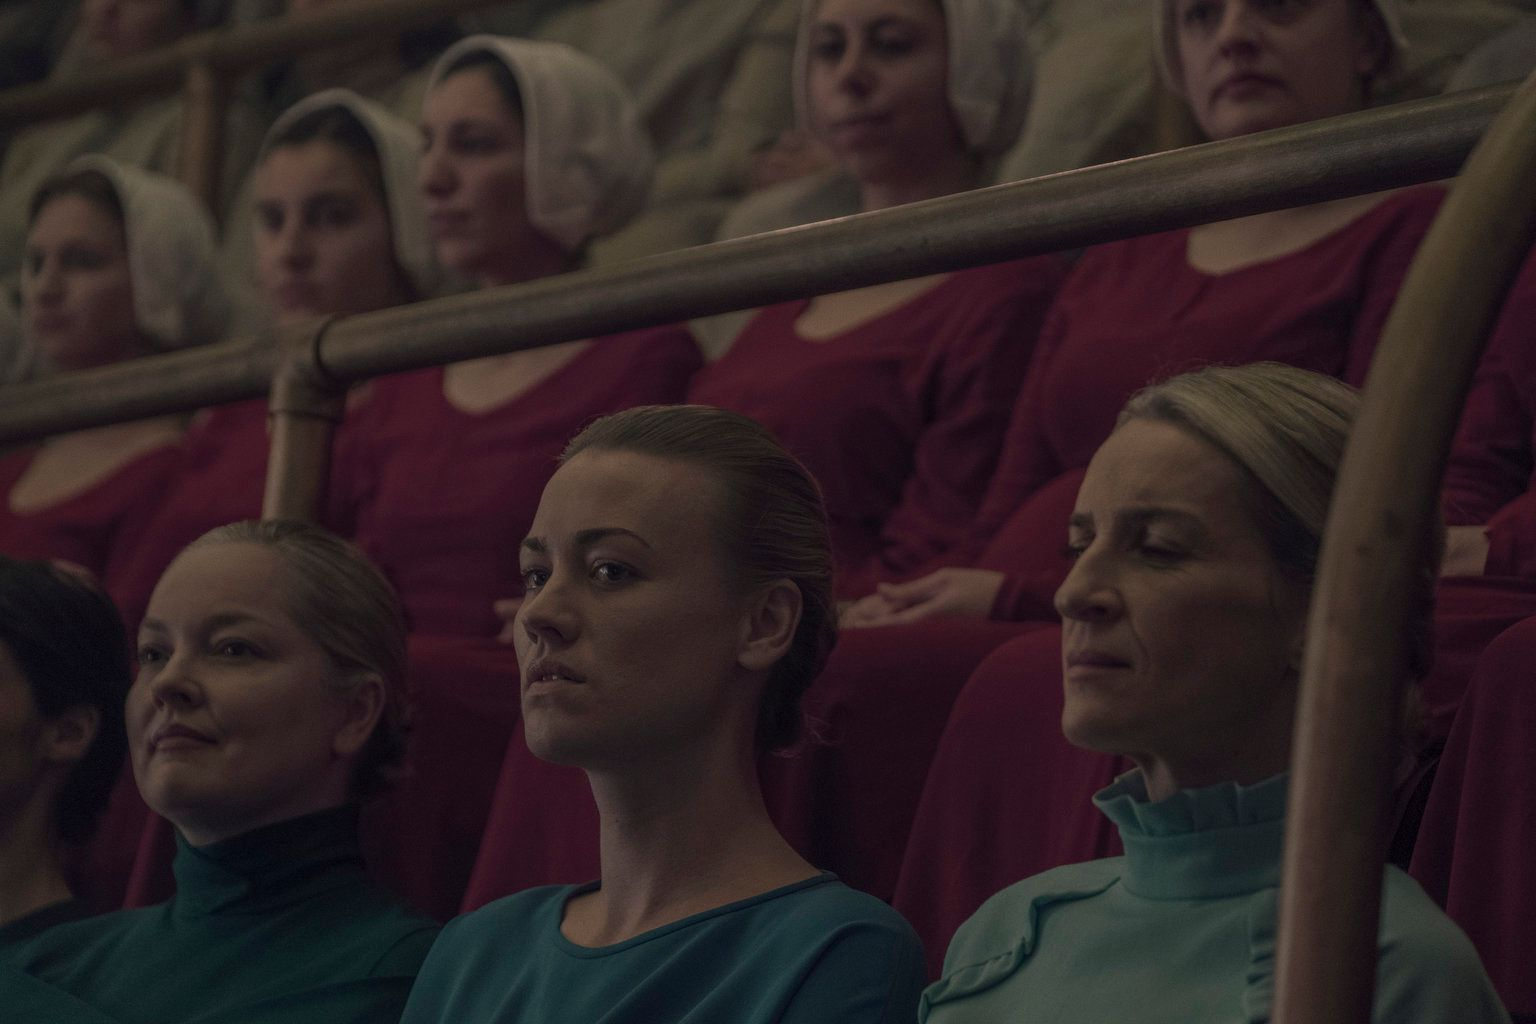 'The Handmaid's Tale' Explores What Resilience Looks Like In